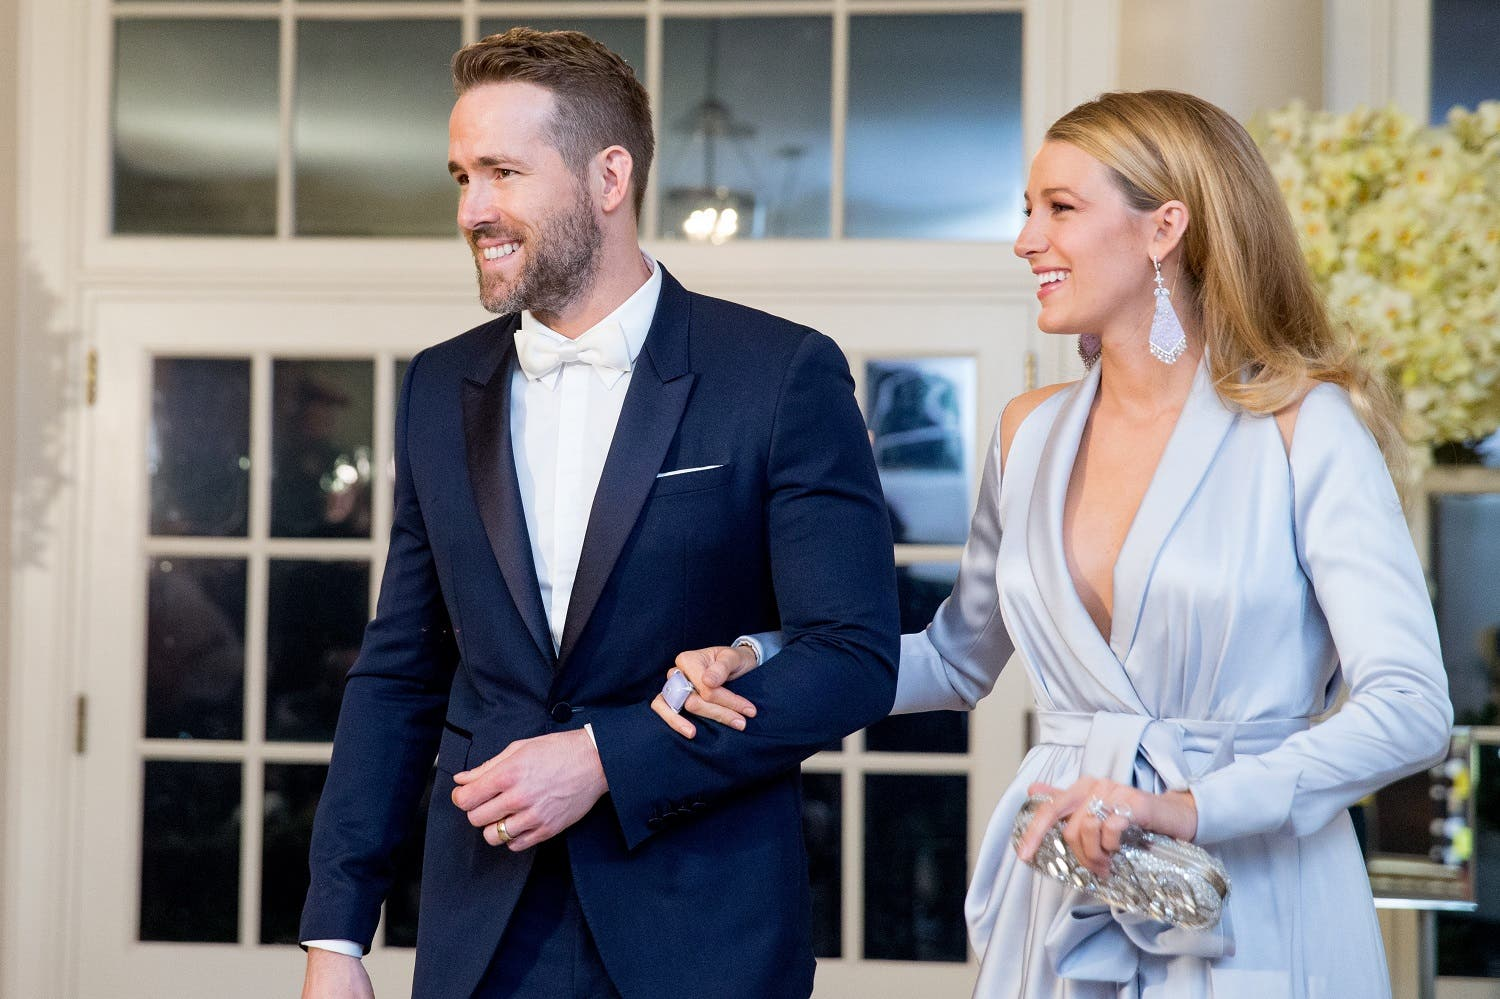 Actor Ryan Reynolds and entertainer Blake Lively, arrive for a State Dinner for Canadian Prime Minister Justin Trudeau, Thursday, March 10, 2016, at the White House in Washington. (AP)